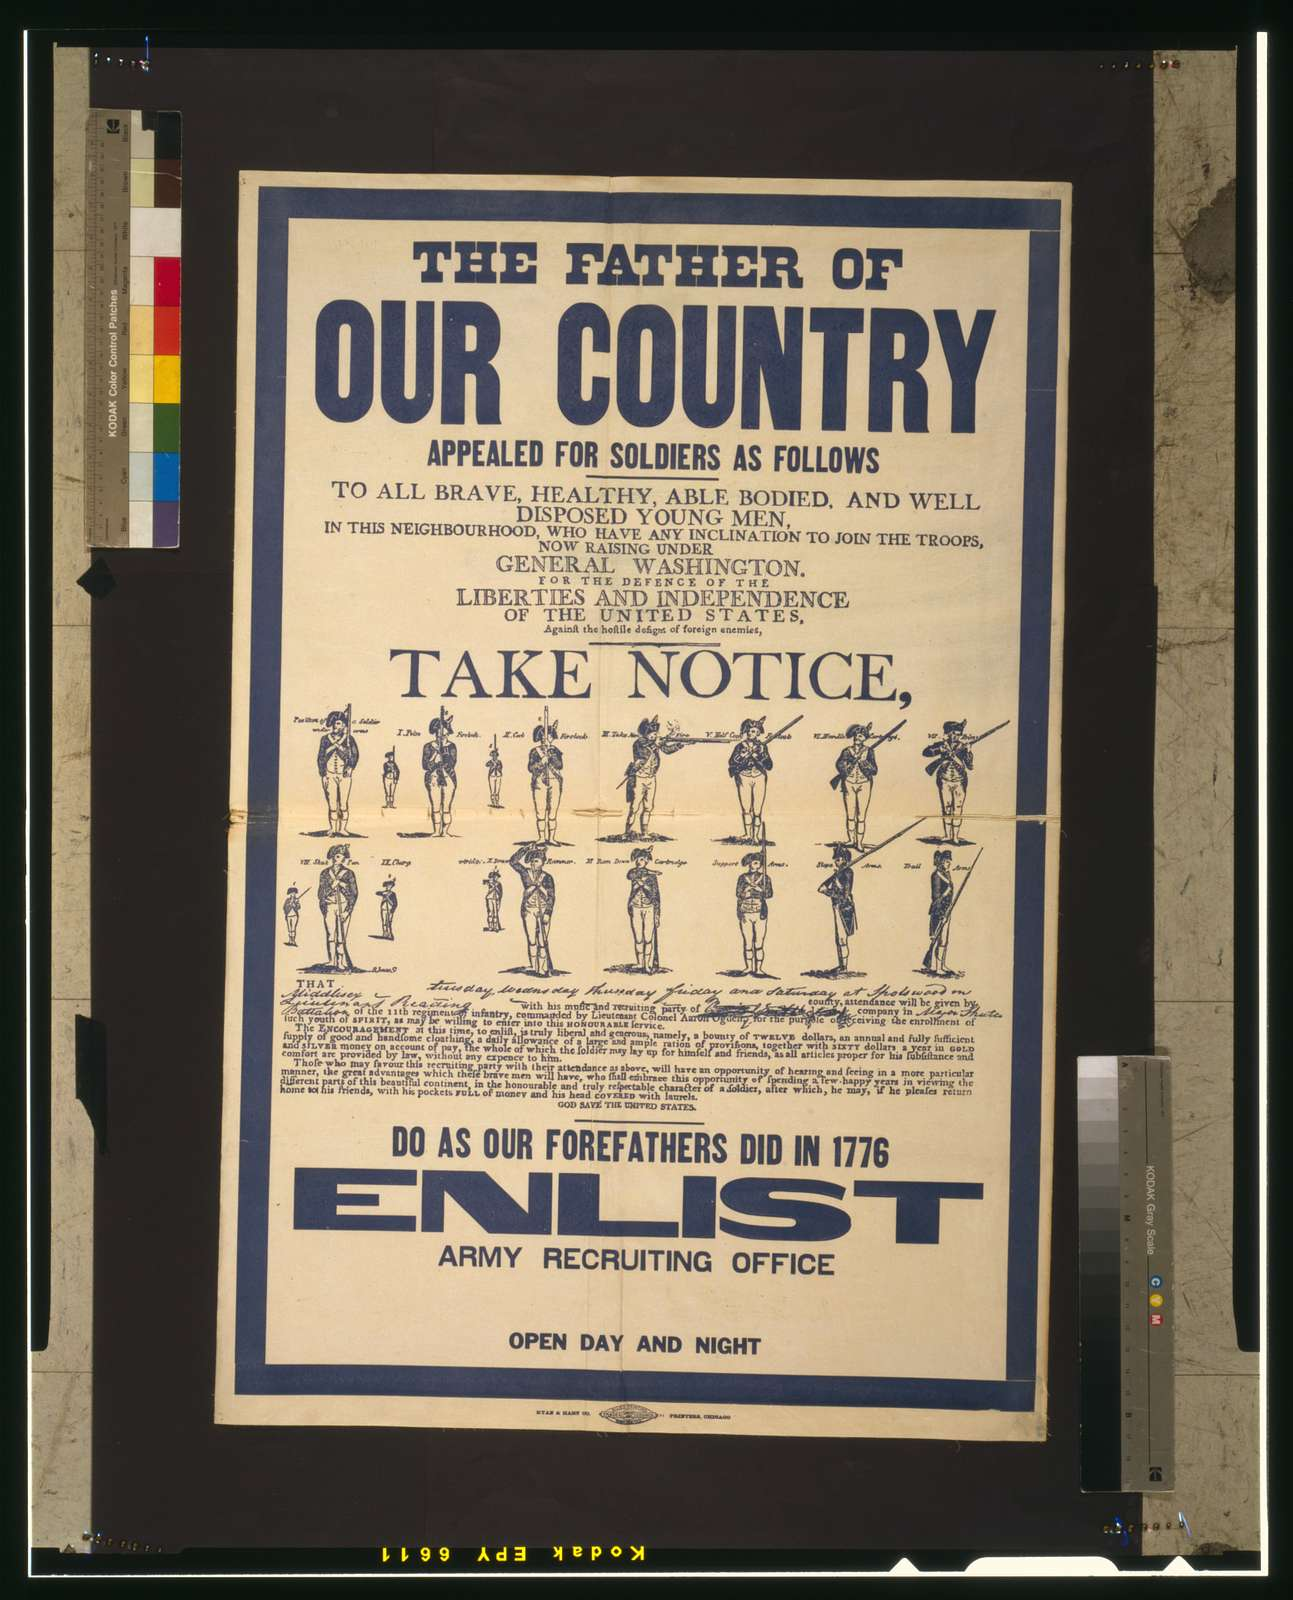 The father of our country appealed for soldiers as follows [...] Do as our forefathers did in 1776--Enlist--Army recruiting office open day and night.